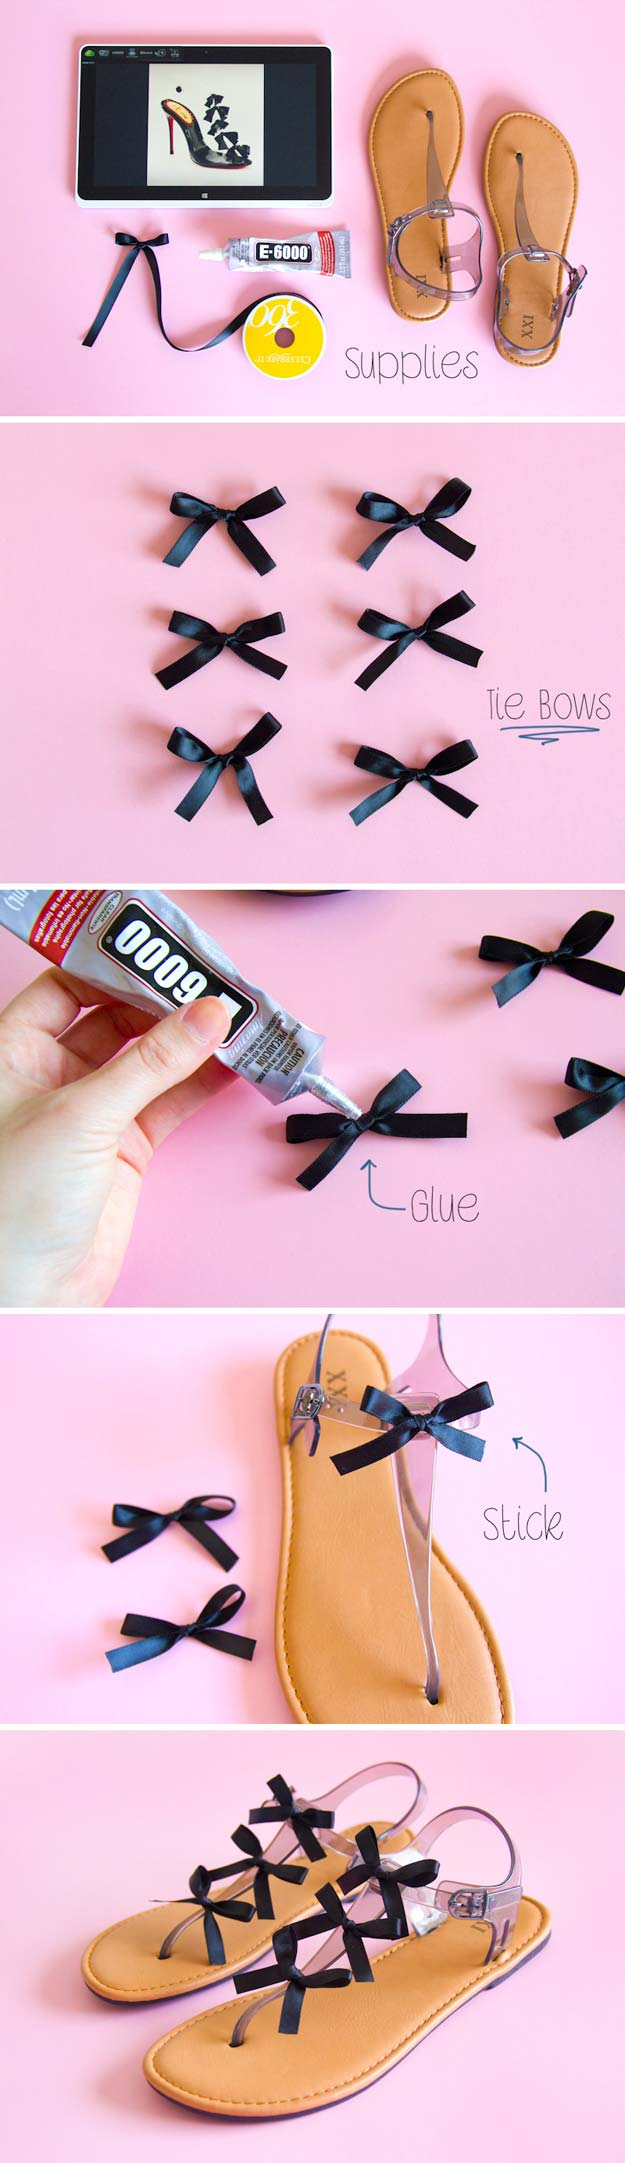 DIY Sandals and Flip Flops - DIY Game Day Bow Sandals - Creative, Cool and Easy Ways to Make or Update Your Shoes - Decorate Flip Flops with Cheap Dollar Store Crafts and Ideas - Beaded, Leather, Strappy and Painted Sandal Projects - Fun DIY Projects and Crafts for Teens and Teenagers